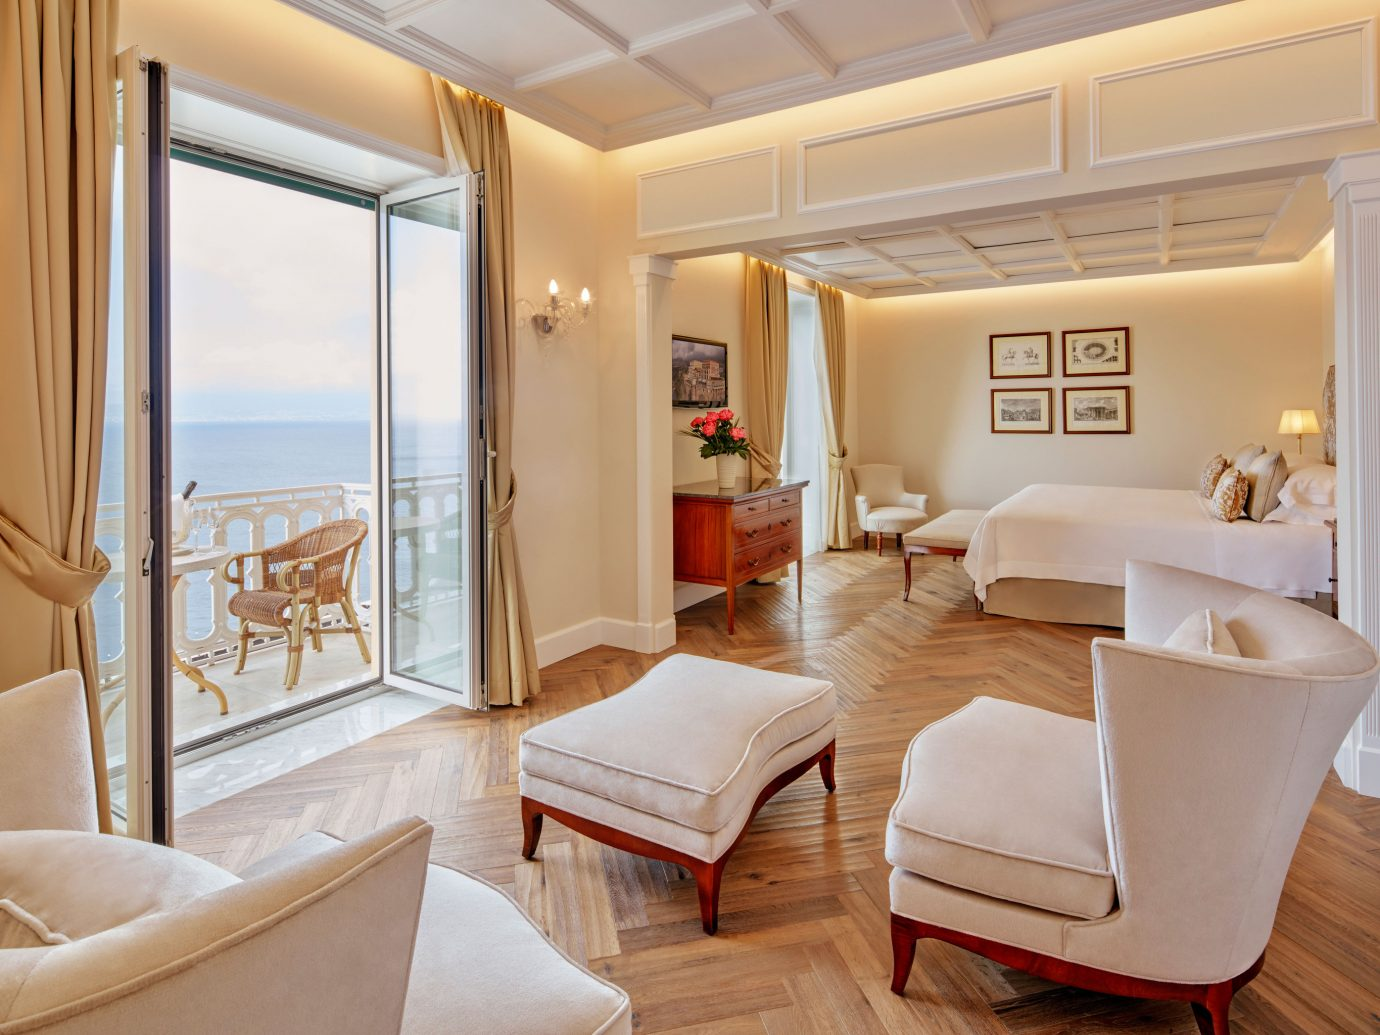 Bedroom at Grand Hotel Excelsior Vittoria Sorrento, Italy